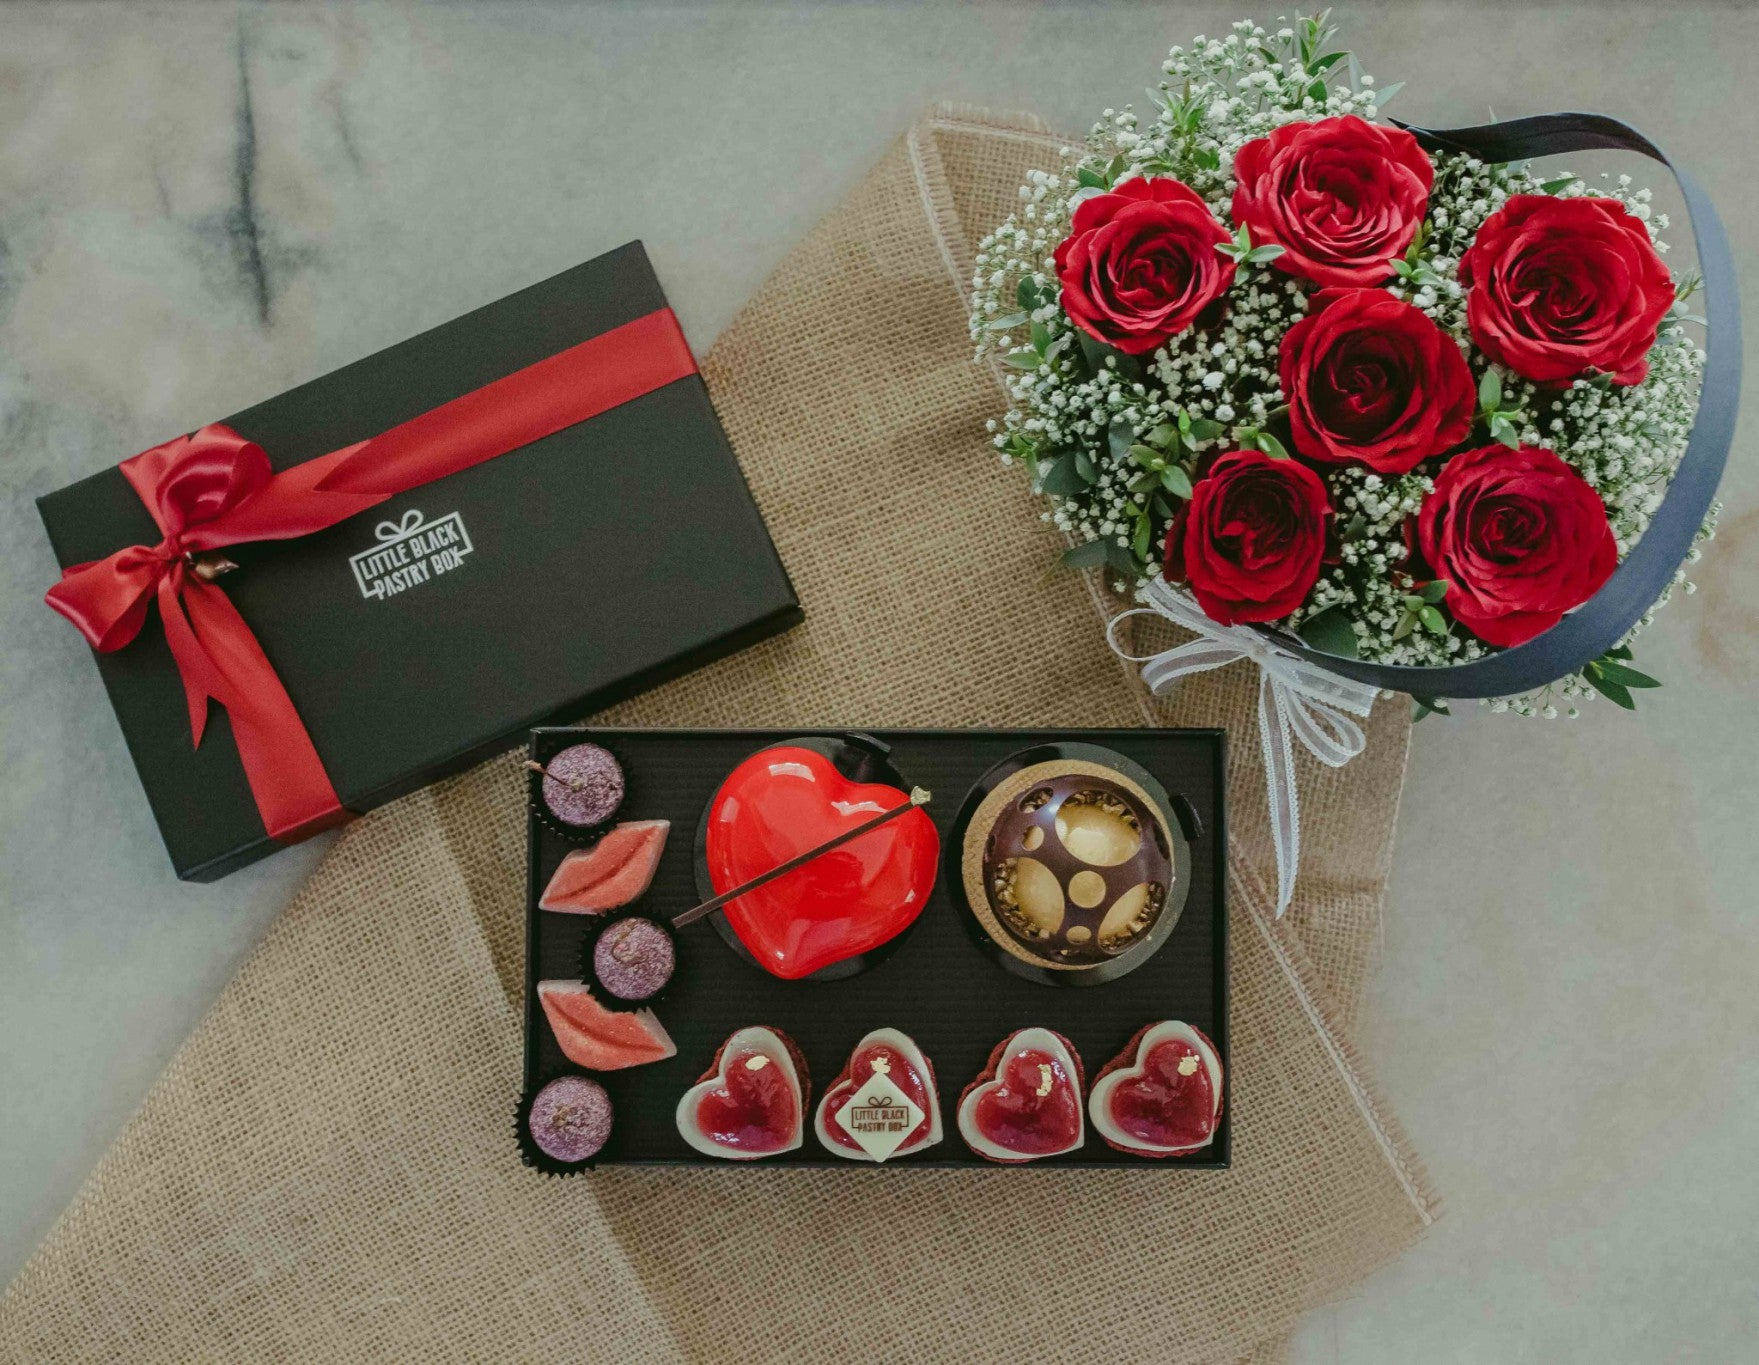 The Great Bundle - Artisan Pastry Box, Macaron, Profiteroles, Petit Gateau, Eclair, Valentine's chocolate, Truffle, Chocolate, Little Black Pastry Box